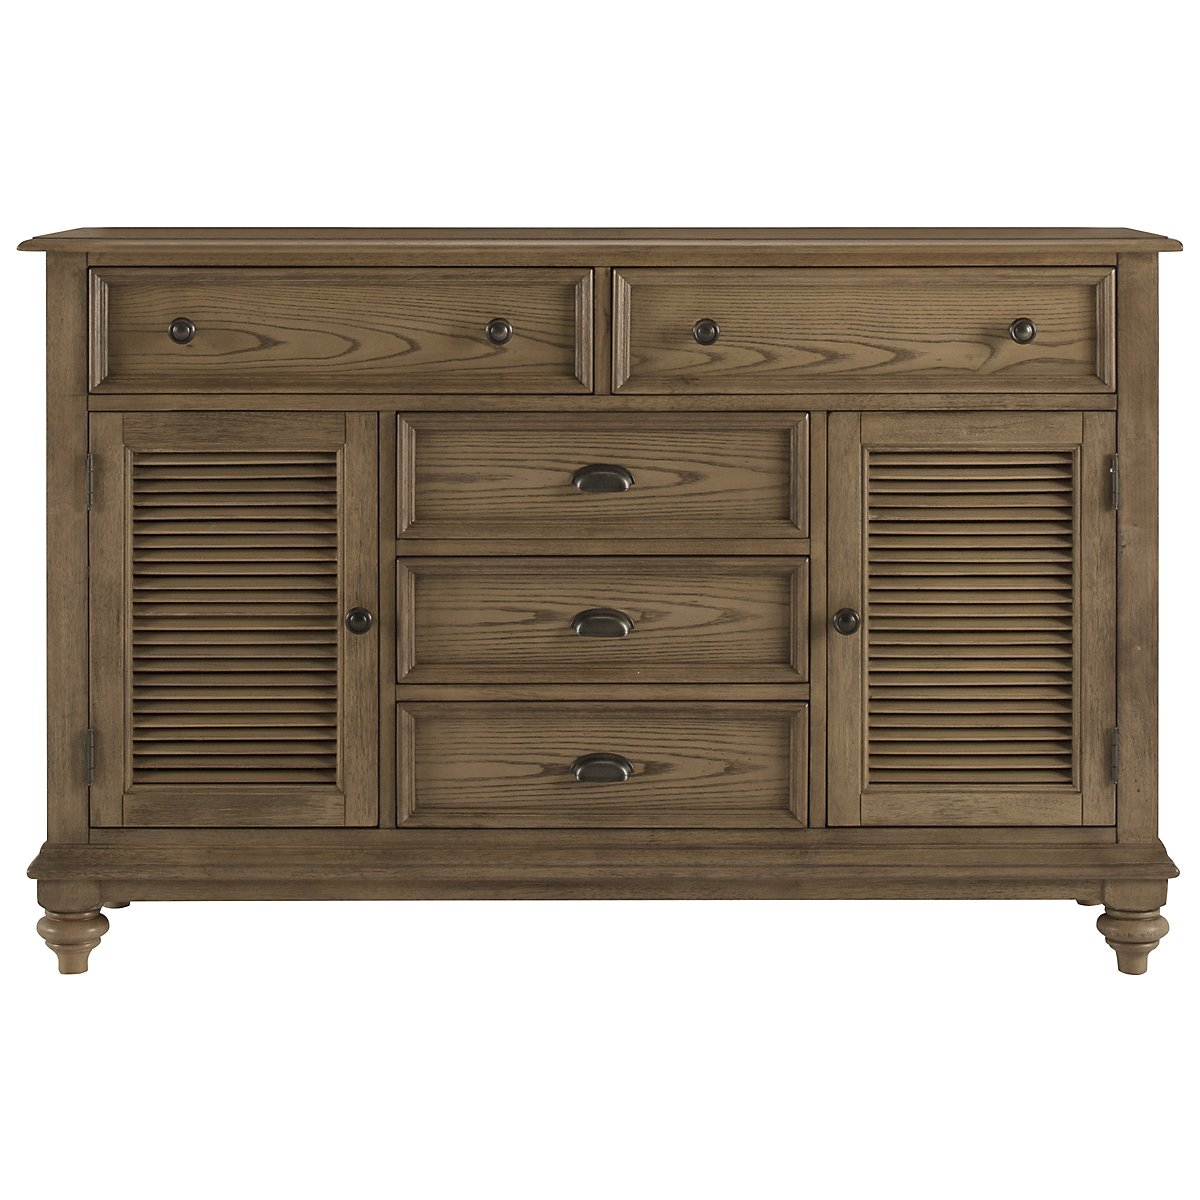 Coventry Light Tone Door Dresser